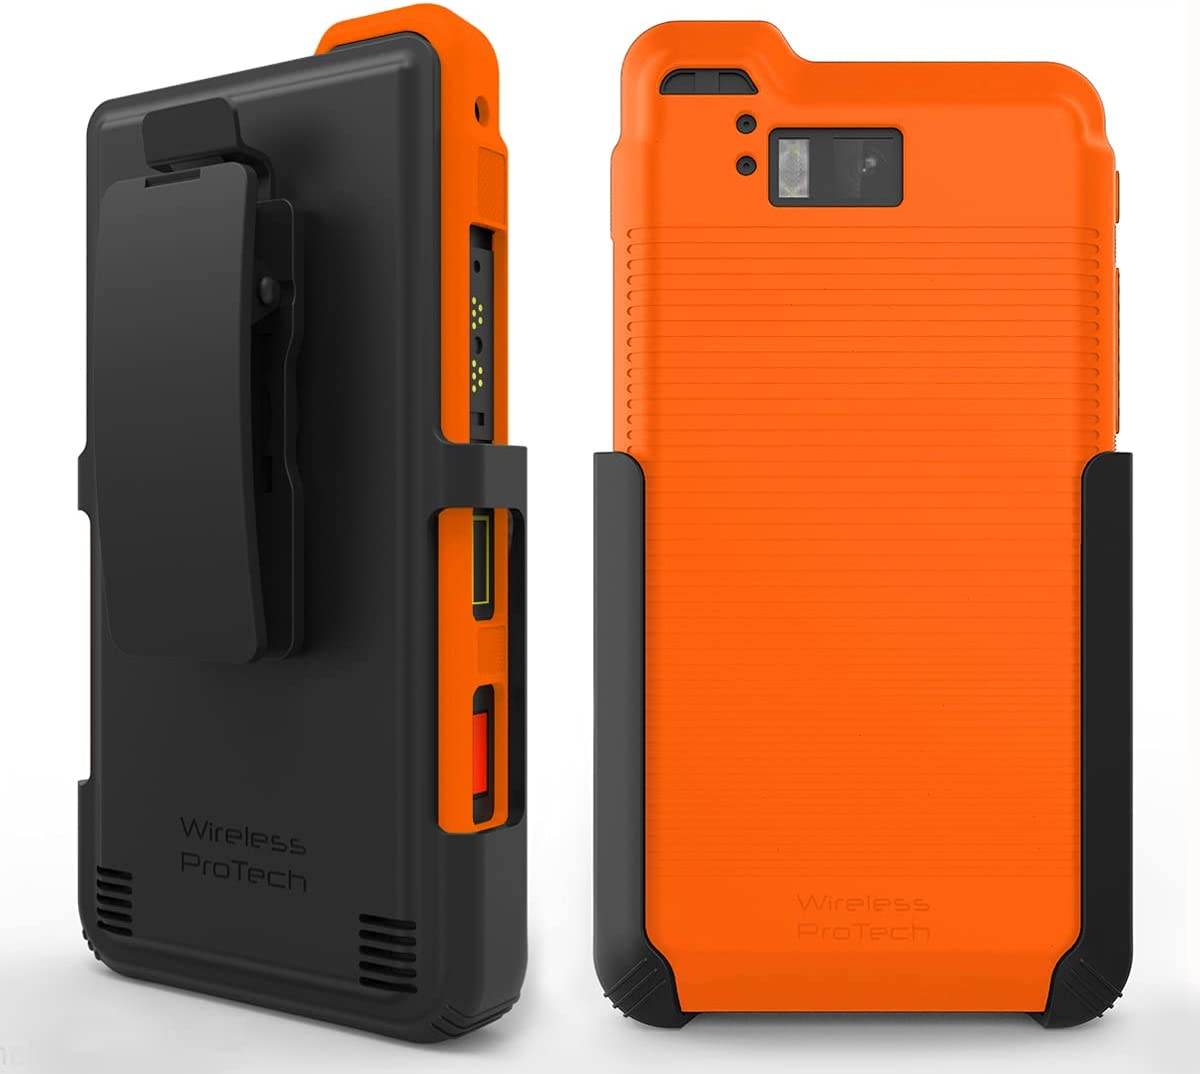 Wireless ProTech Case with Clip Compatible with Sonim XP8 Phone Model XP8800. Heavy Duty Rotating Belt Clip Holster and Durable Flexible Protective Case Combo (Orange)